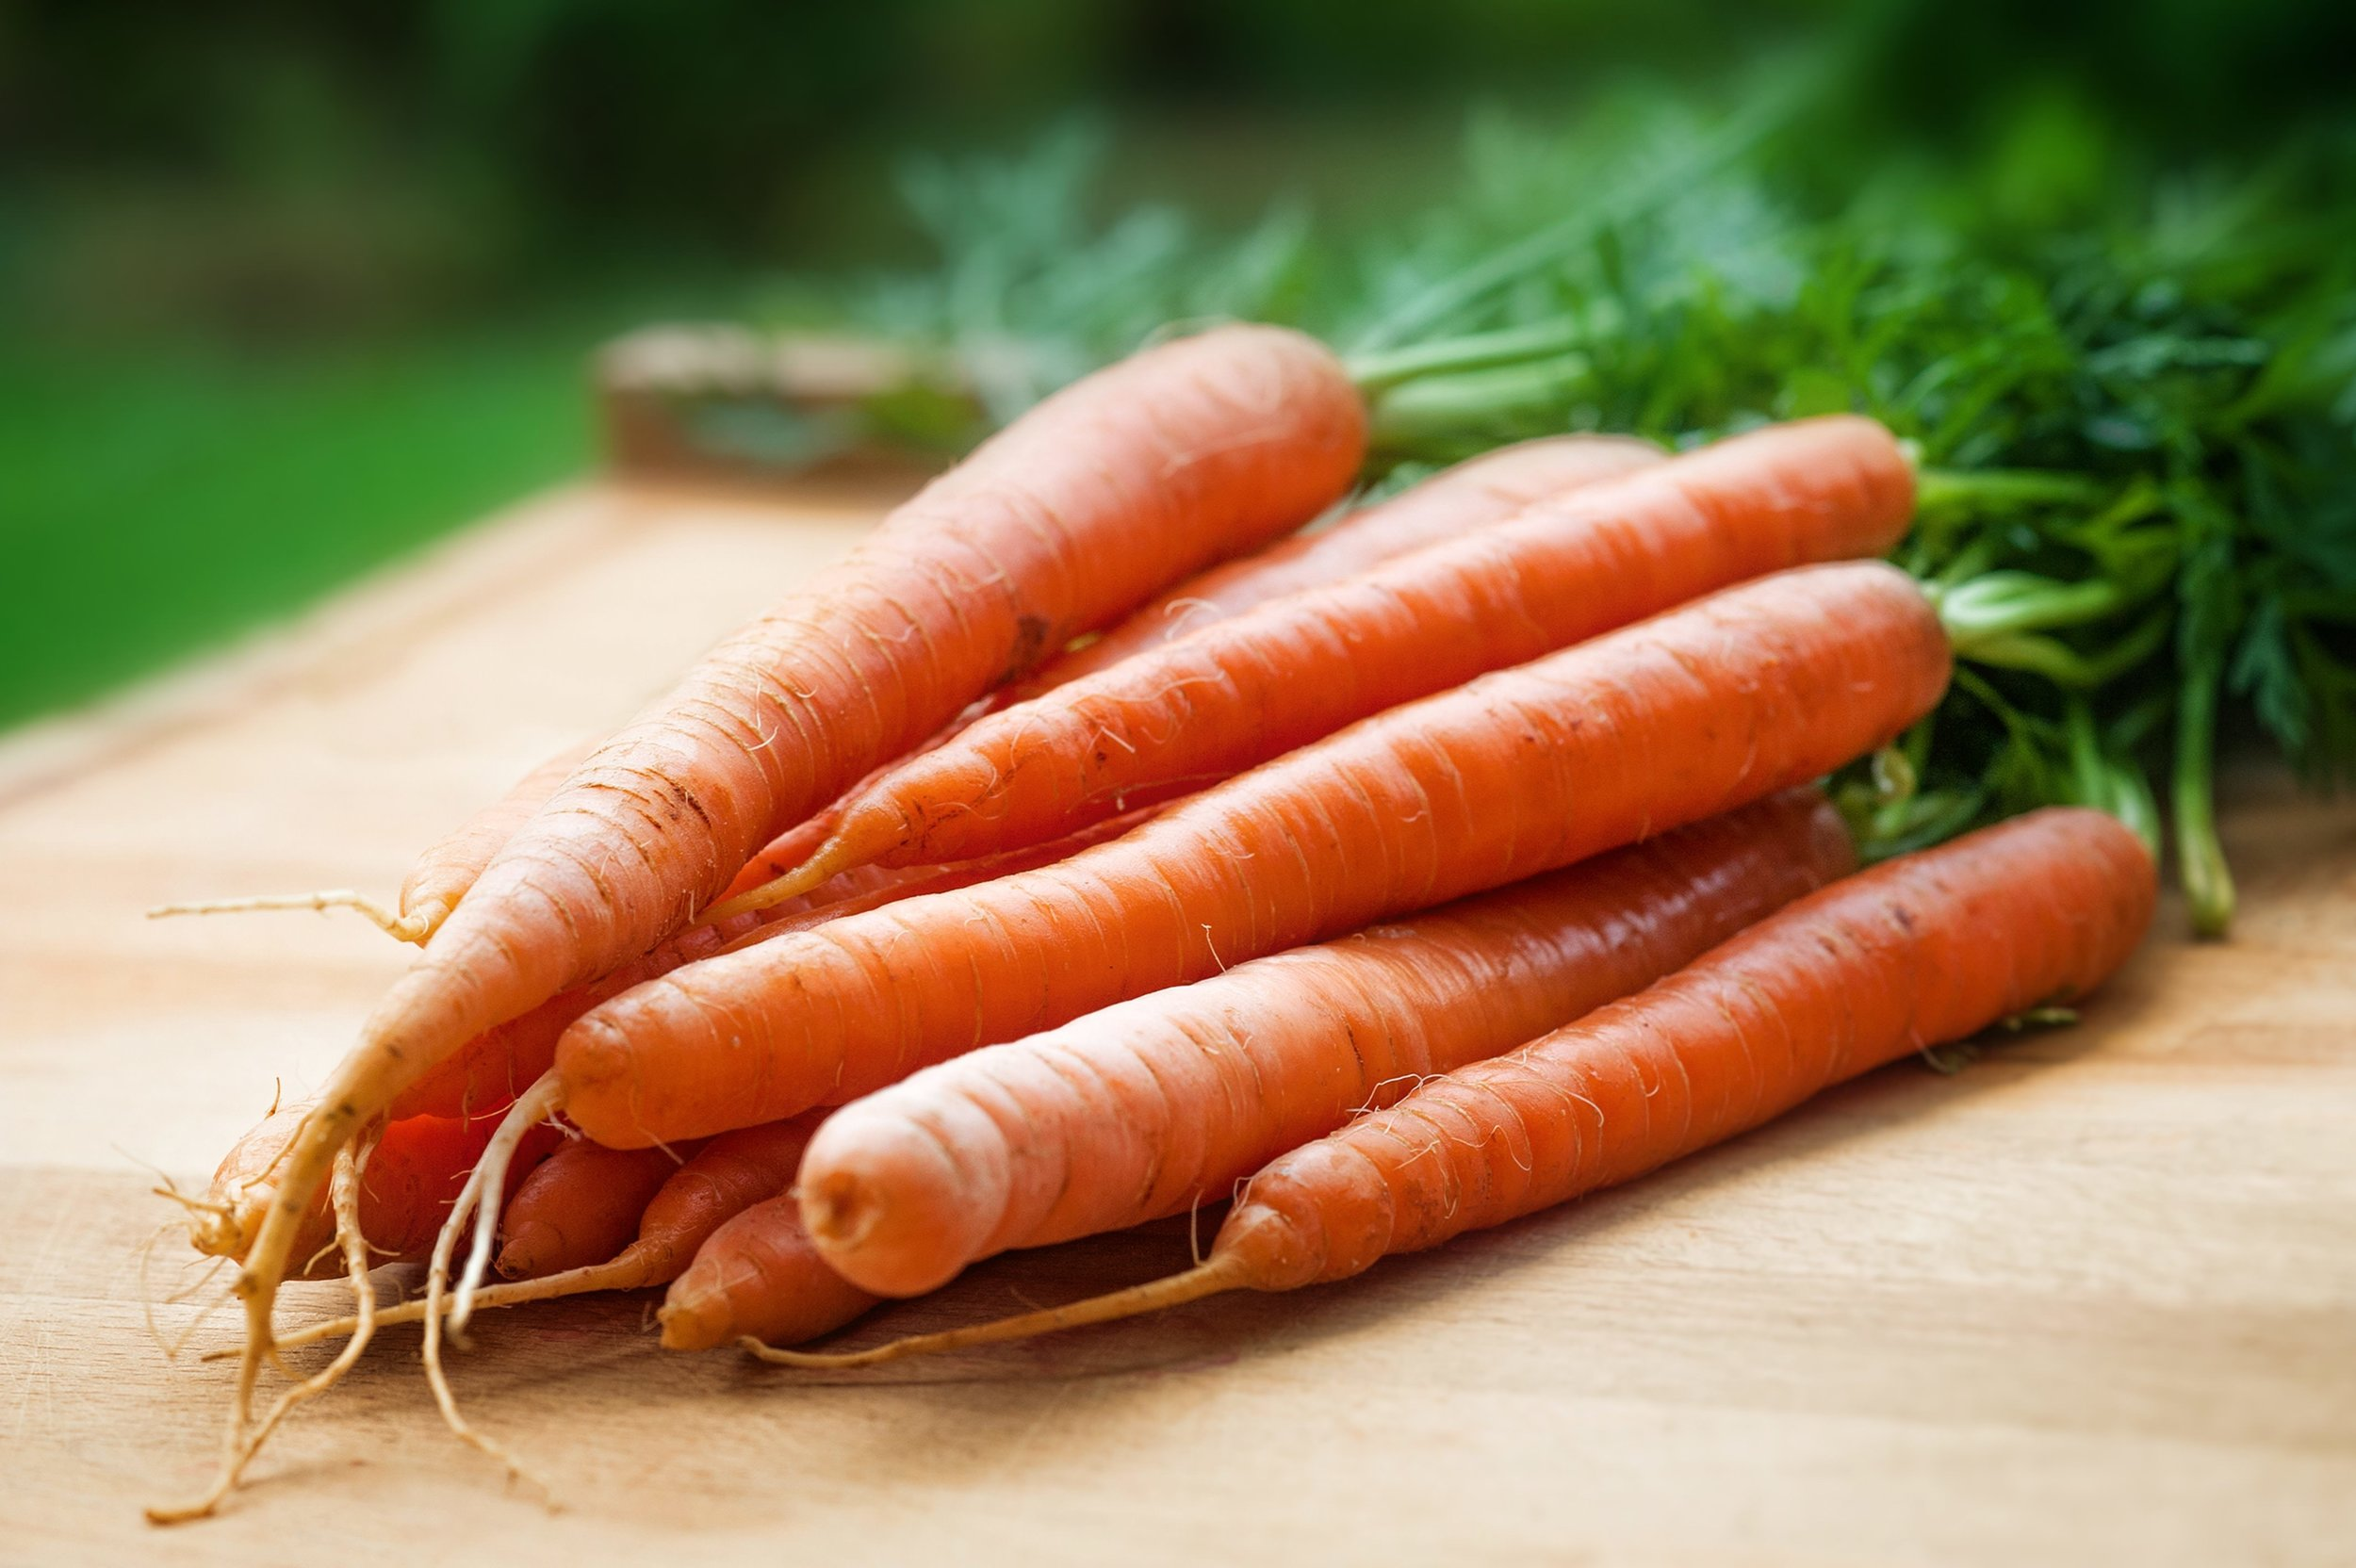 Eating carrots can fight against the flu.